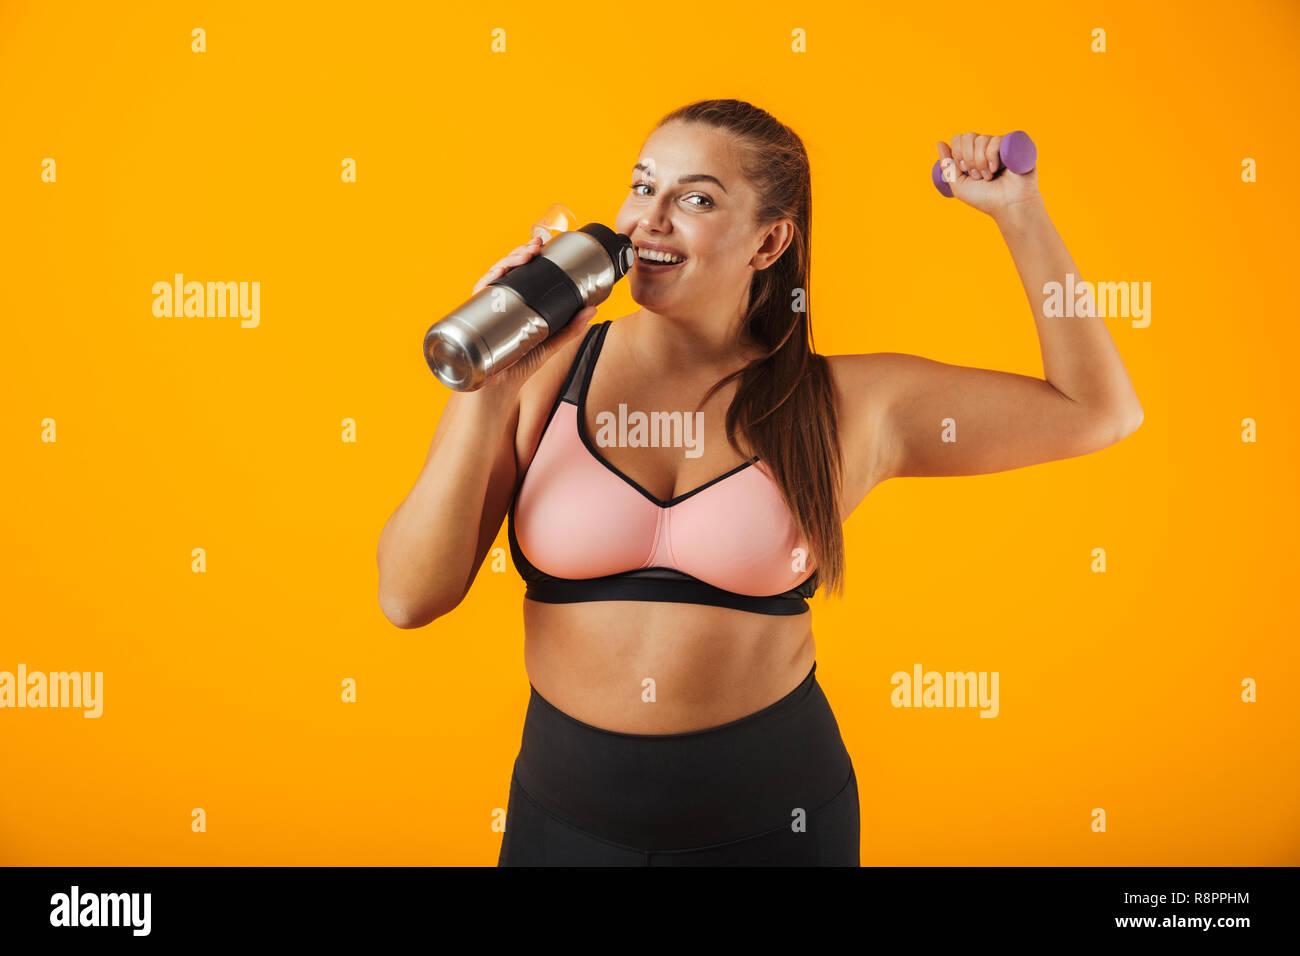 c7f5756f57 Portrait of young chubby woman in sportive bra drinking water from thermos  while lifting dumbbell isolated over yellow background